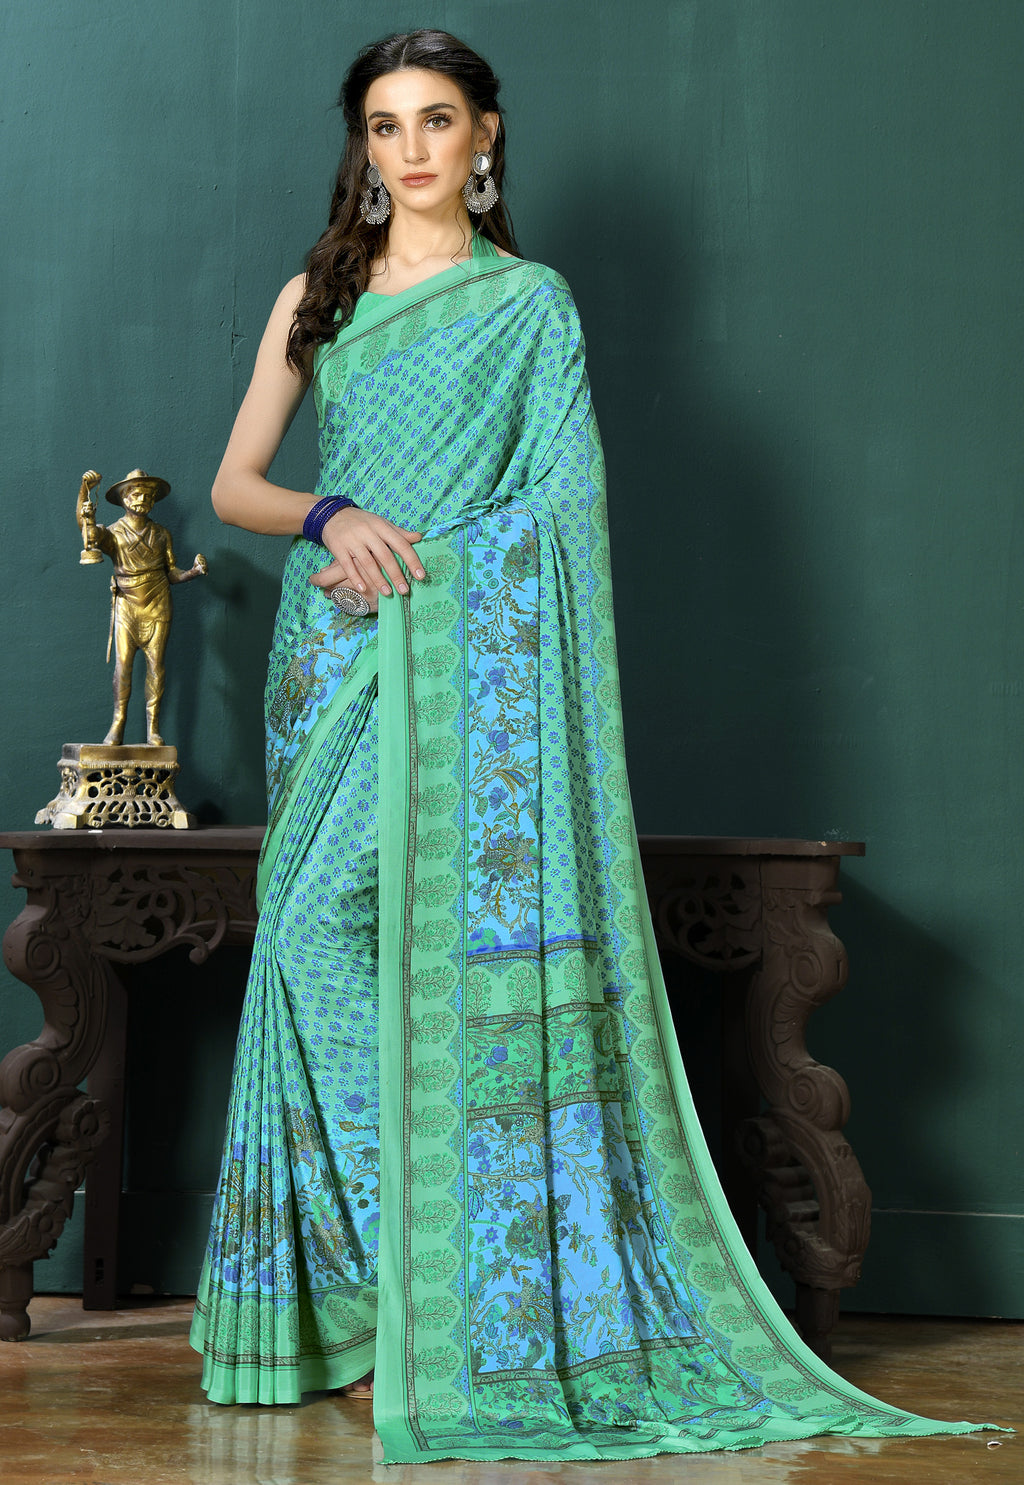 Aqua Green Color Crepe  Digital Print Kitty Party Sarees NYF-8131